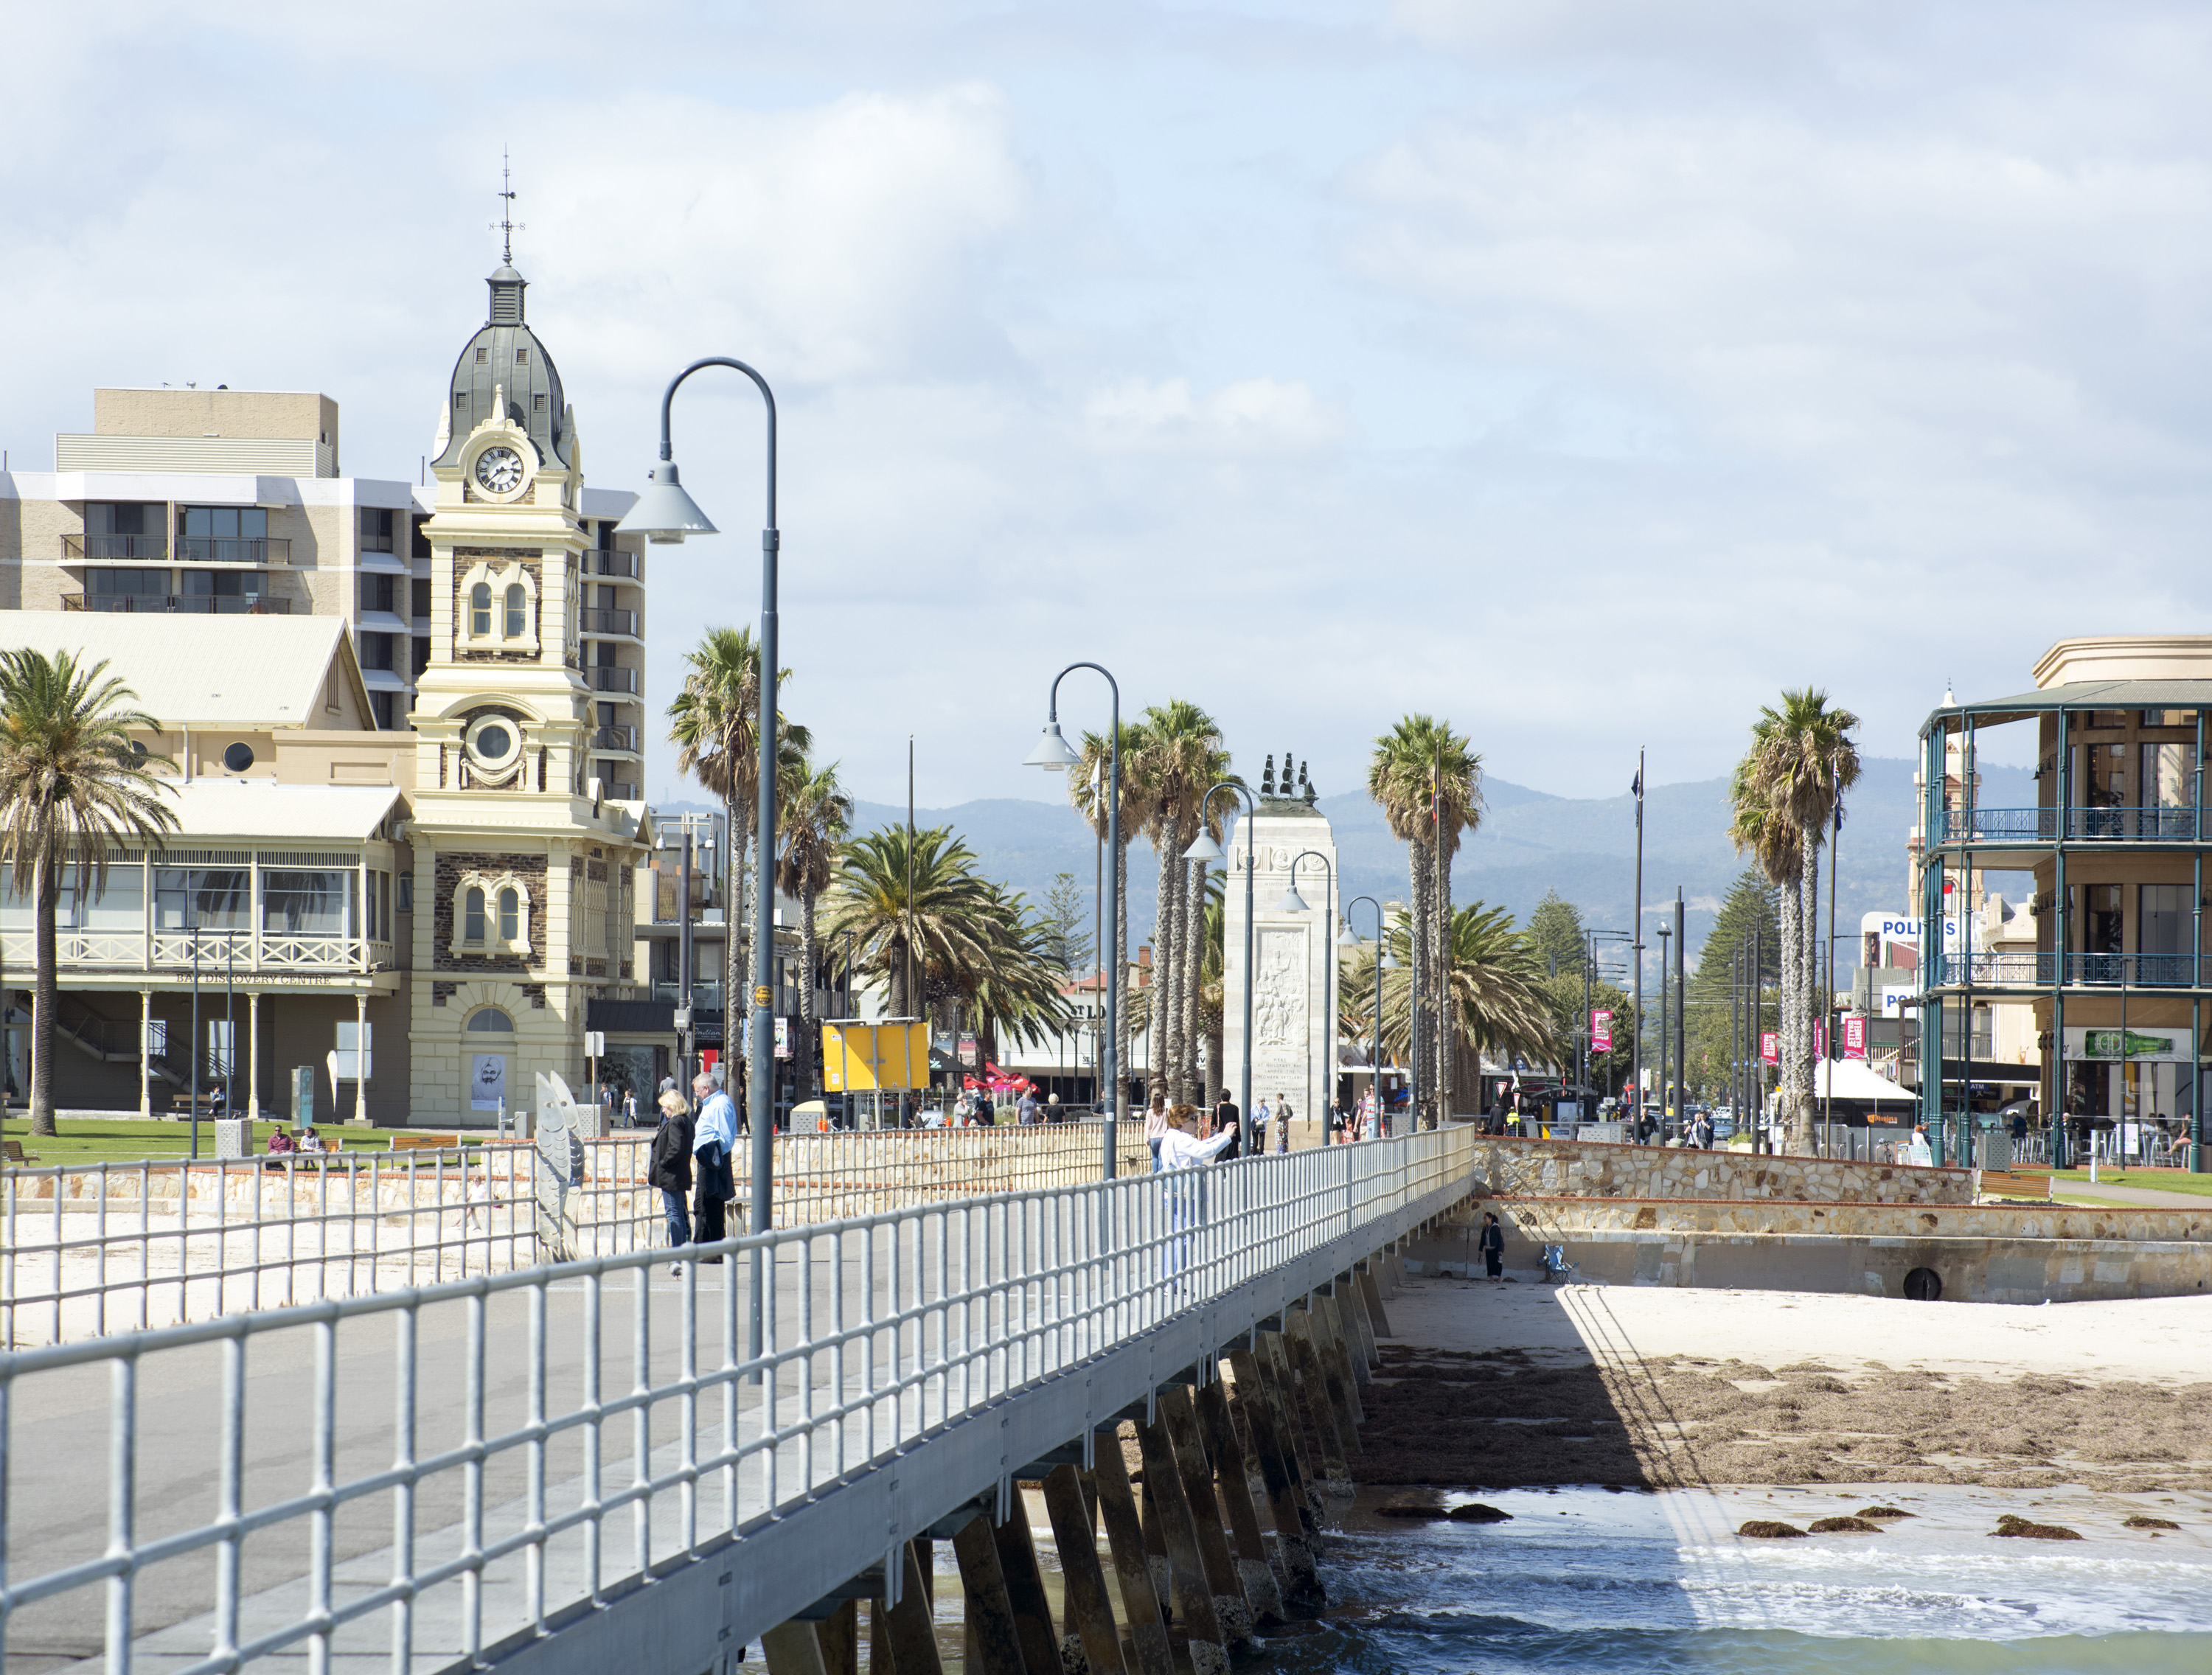 View from the pier at Glenelg, Adelaide, Australia looking back at historic heritage buildings with people standing on the promenade admiring the ocean